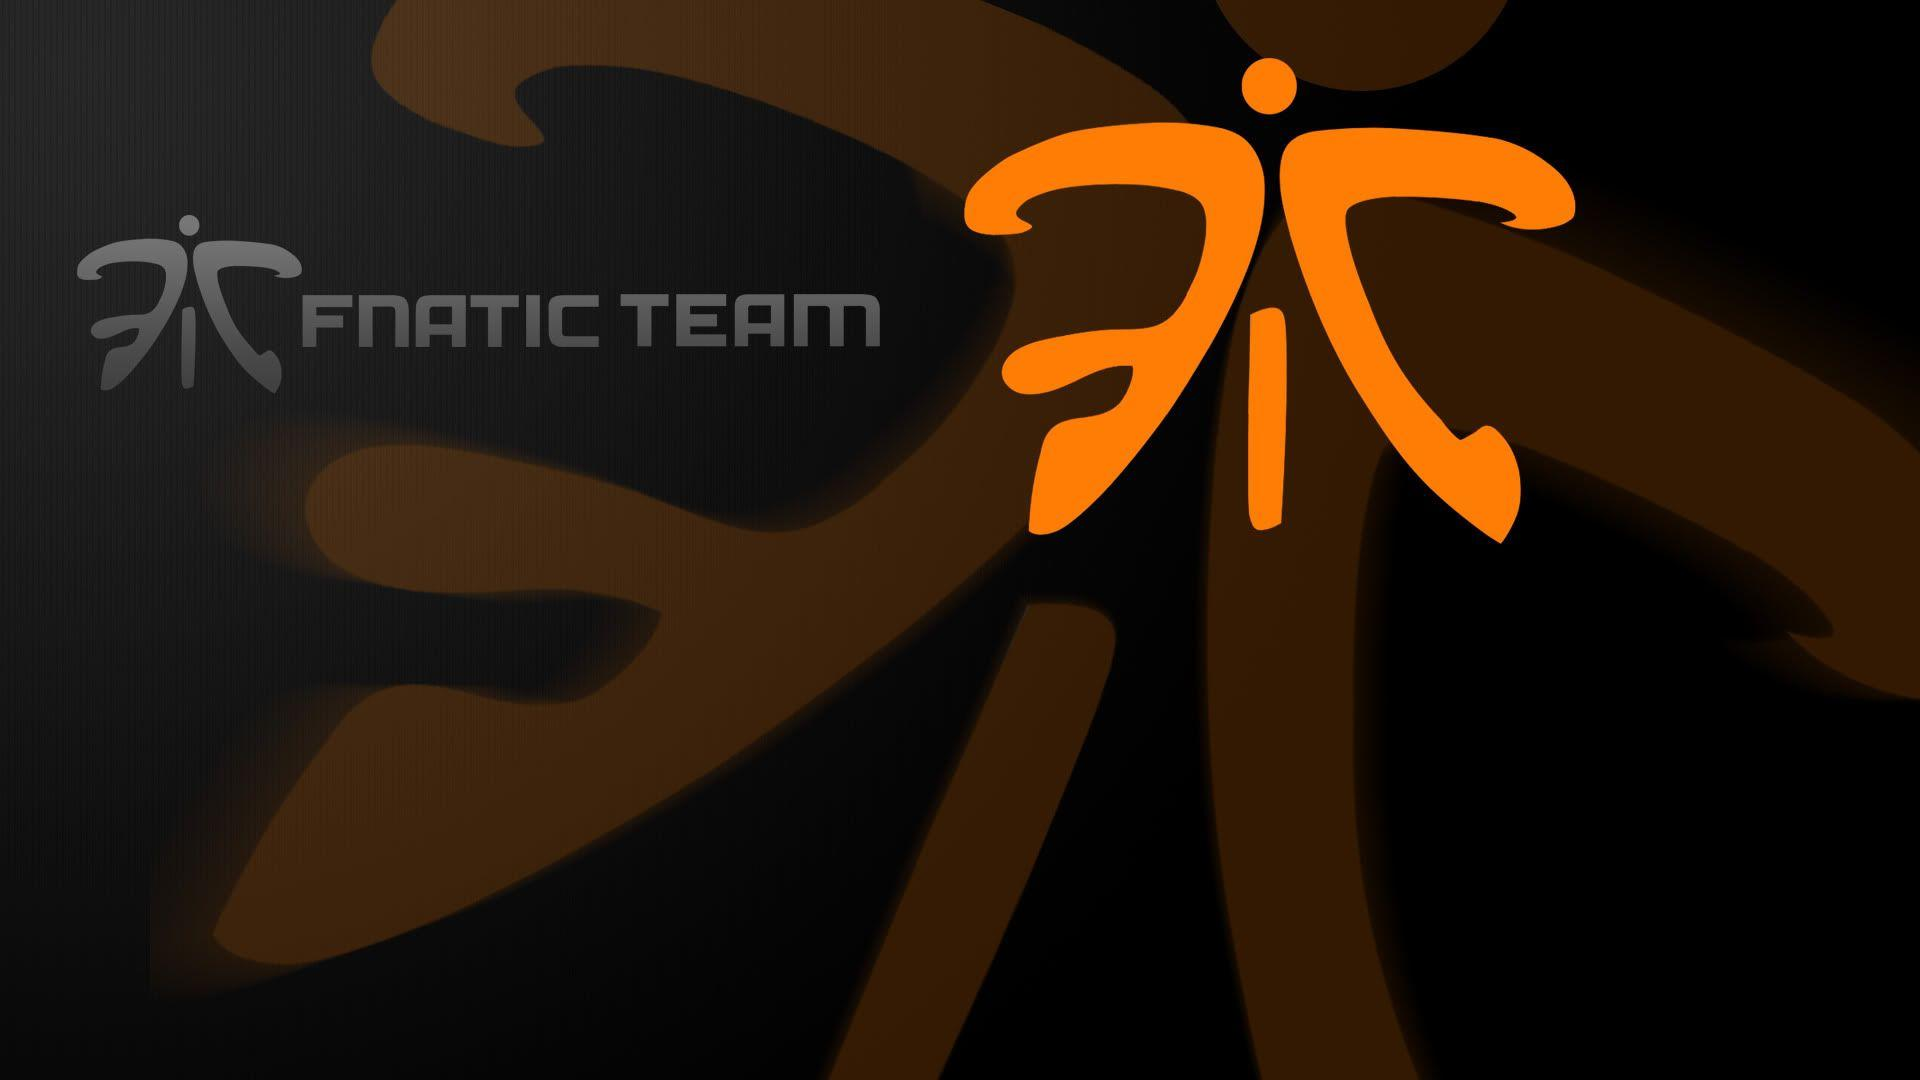 HD Fnatic Wallpapers and Photos